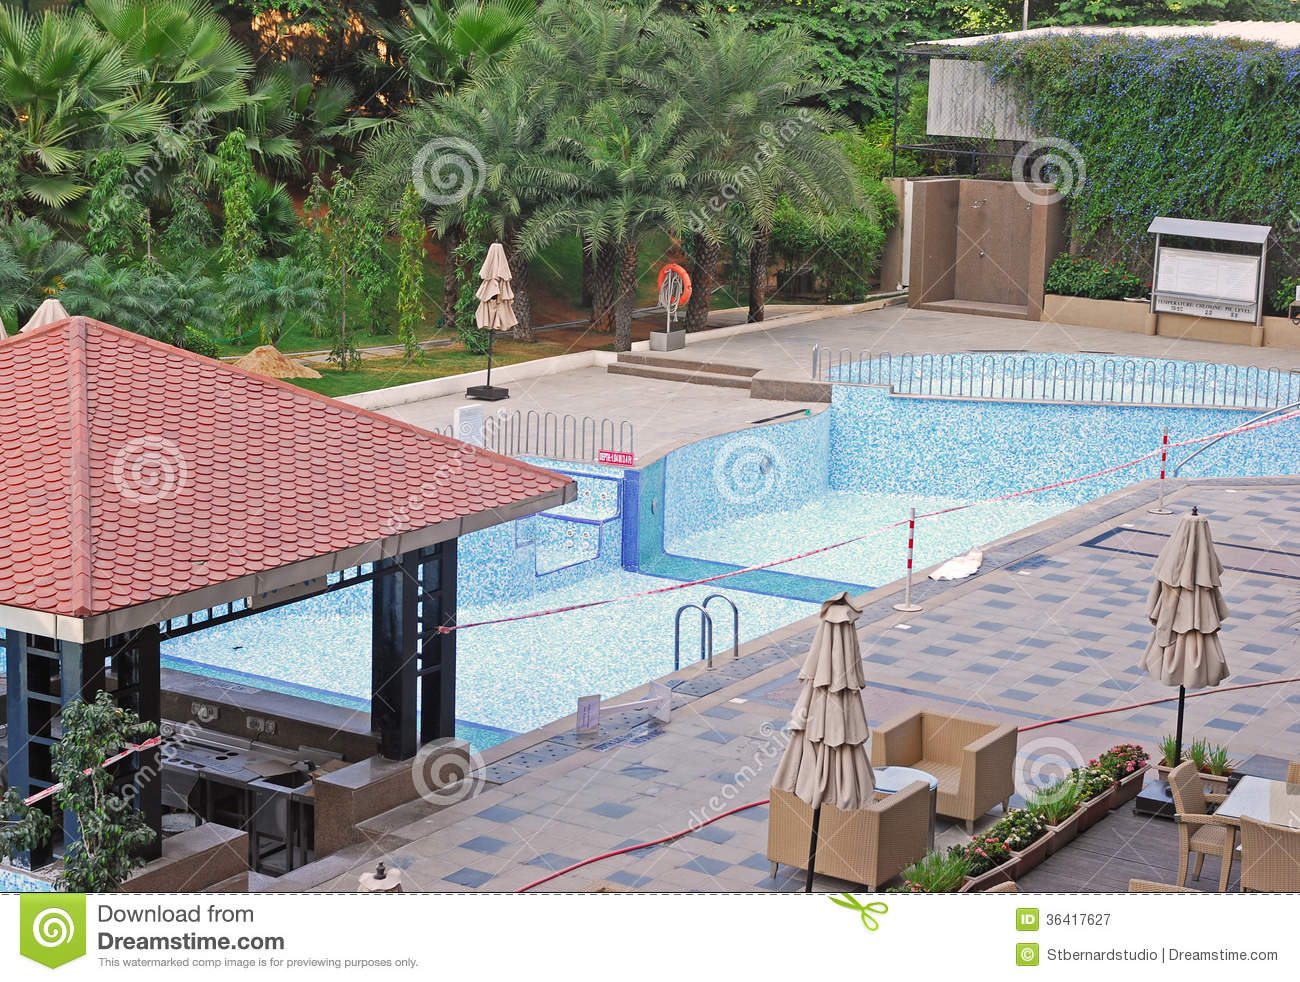 Maintenance of swimming pool royalty free stock - Hotel with swimming pool on balcony ...